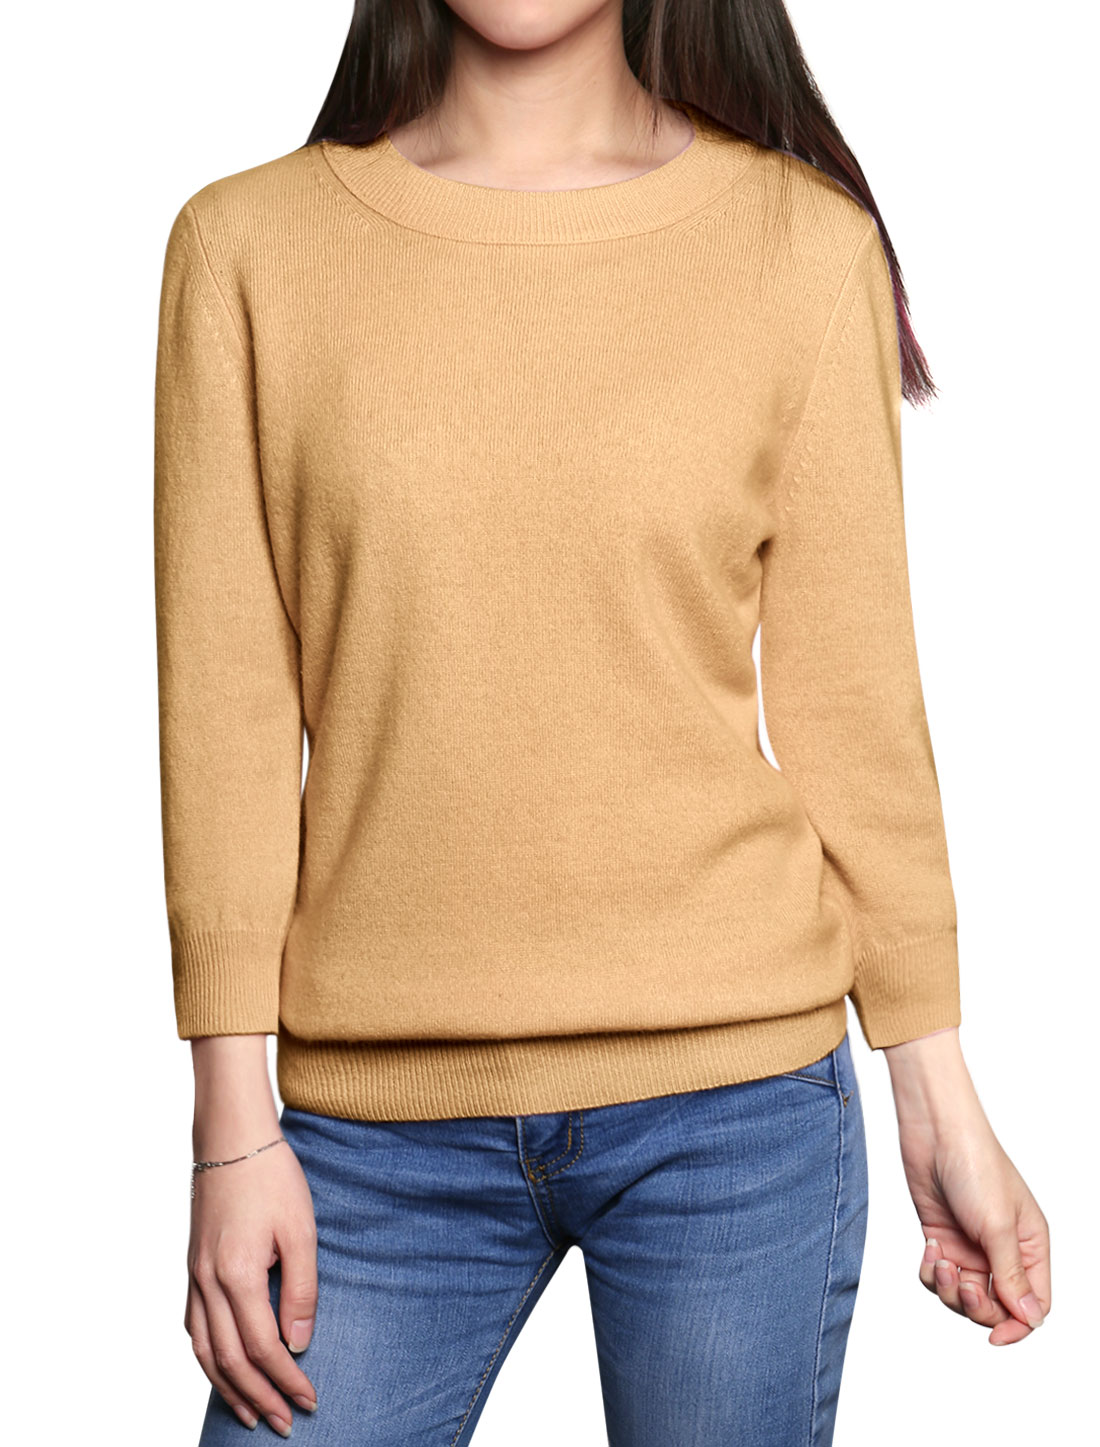 Women 3/4 Sleeves Basic Cashmere Sweater Brown M